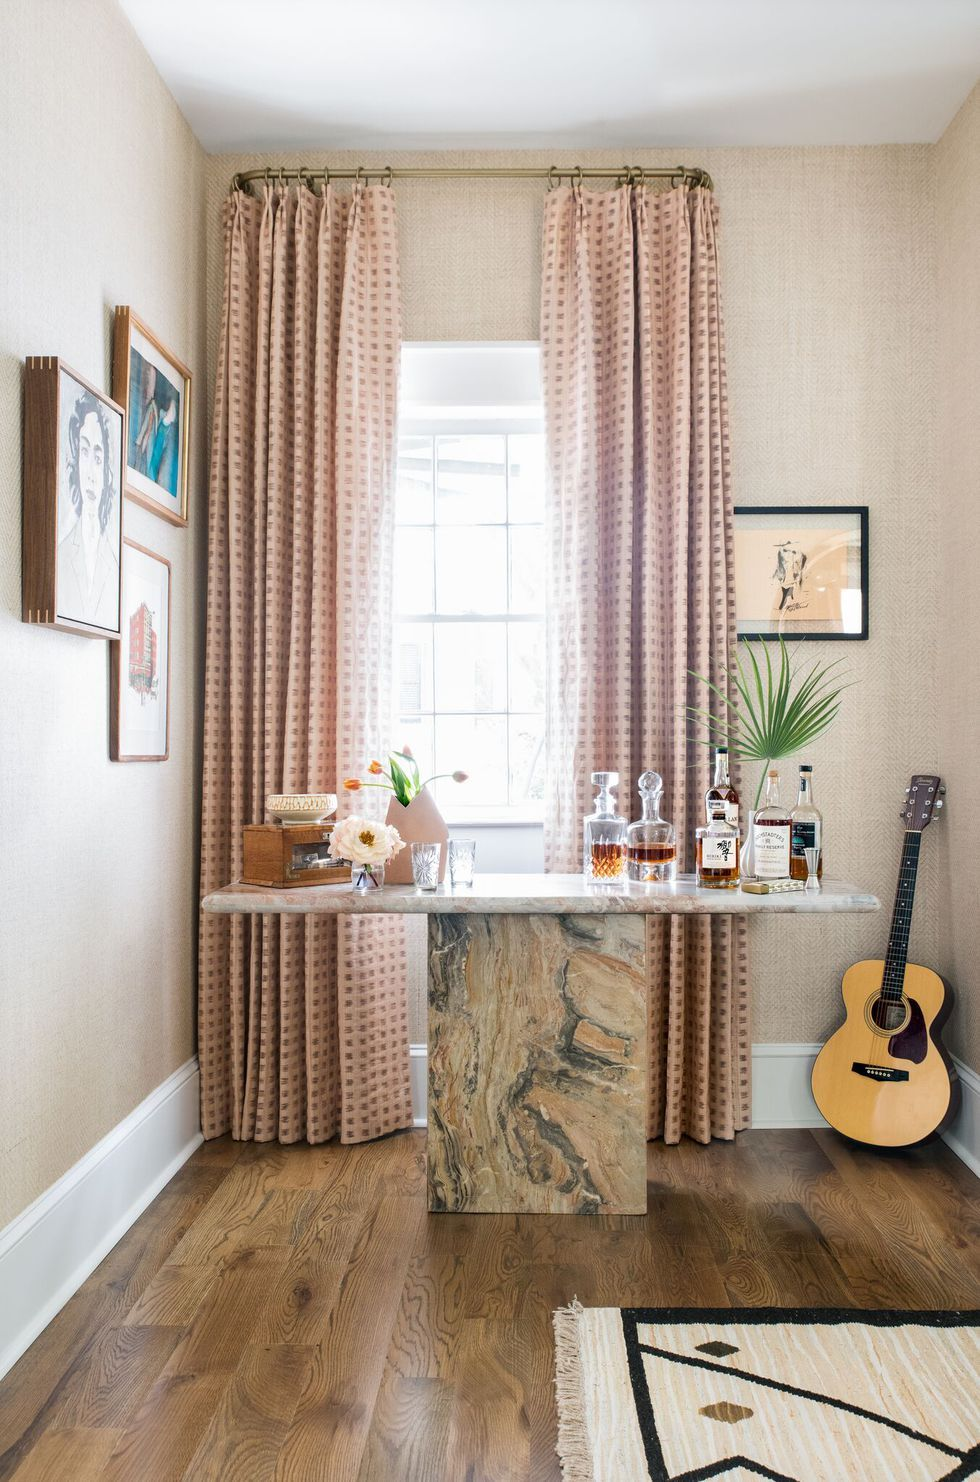 A Home Tour So Good It May Make You Weep Best Interior Design Blogs Decor